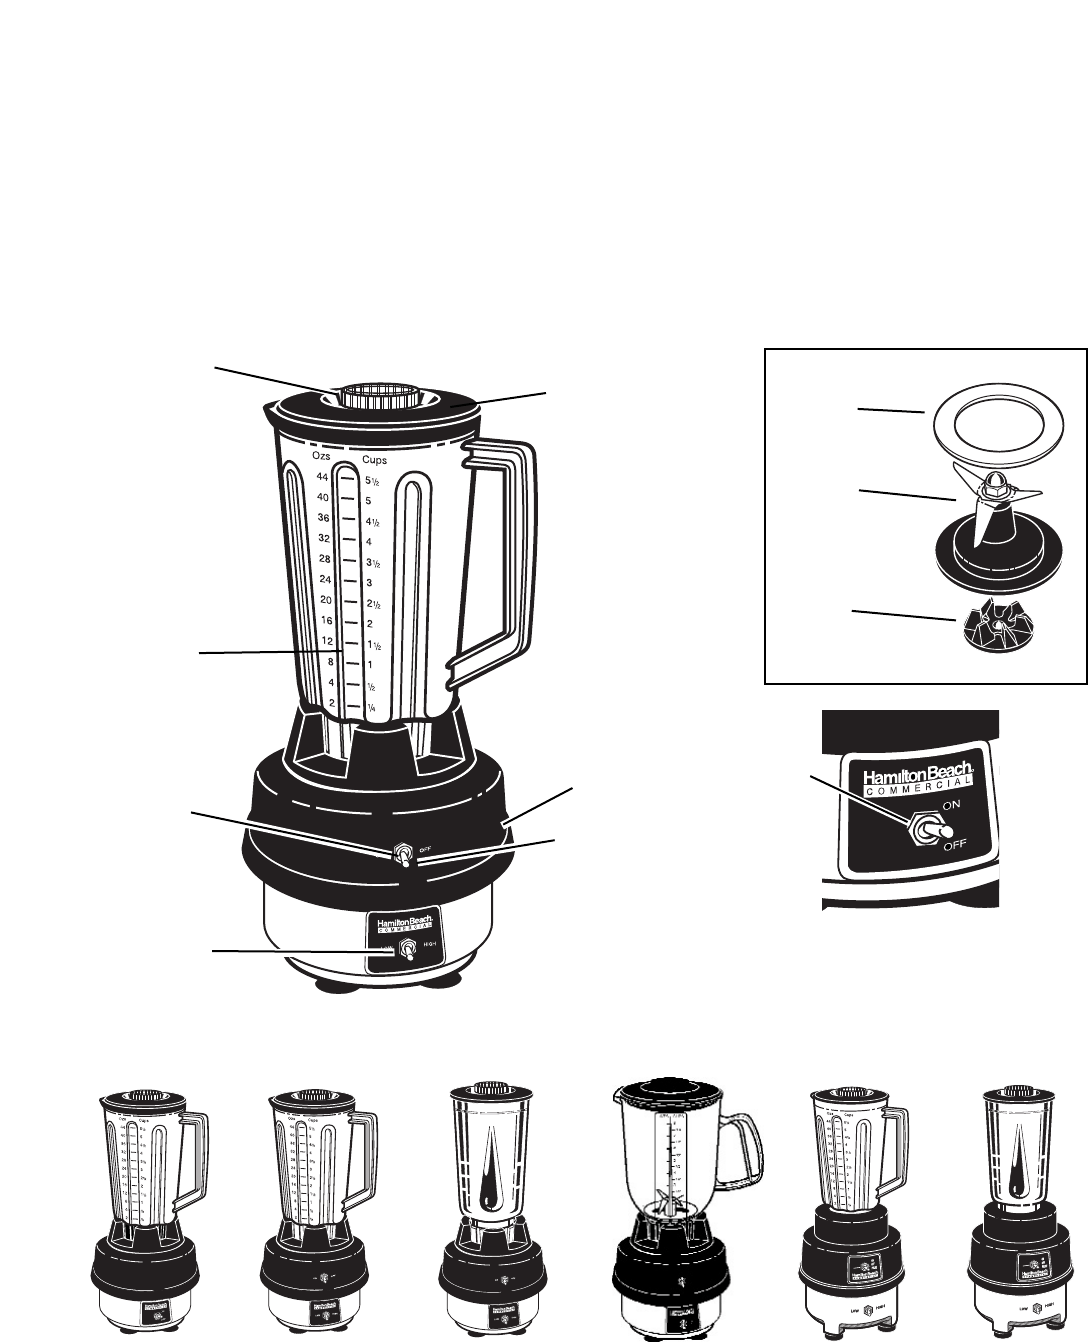 Hamilton Beach Commercial Blender Manual